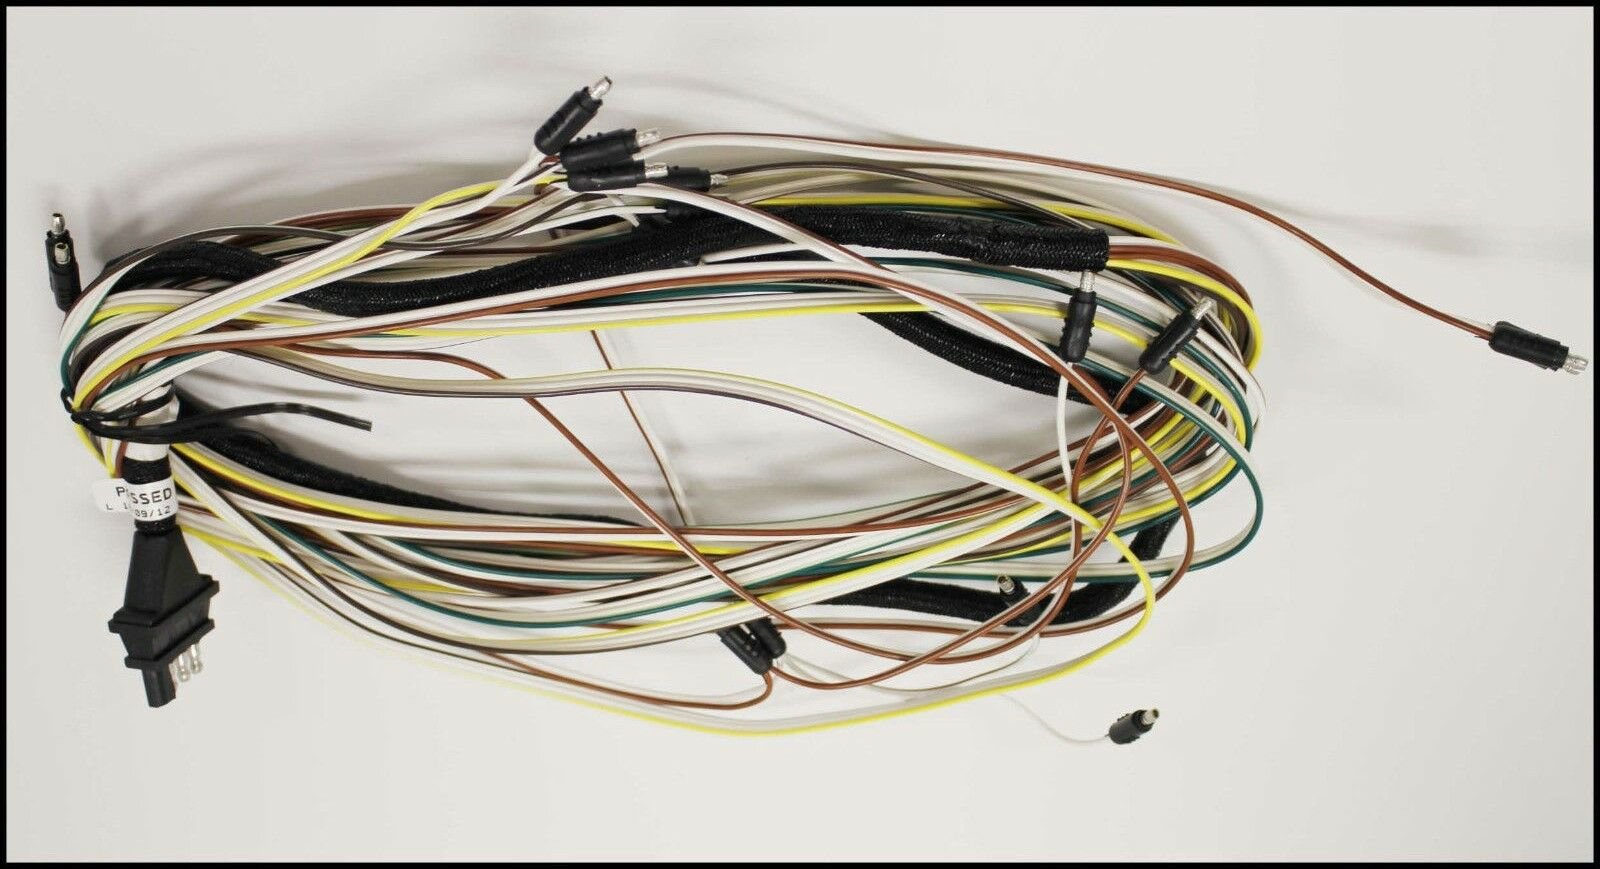 Triton 08428 Xt Trailer Wire Harness Ebay Wiring Diagram For Adams Norton Secured Powered By Verisign